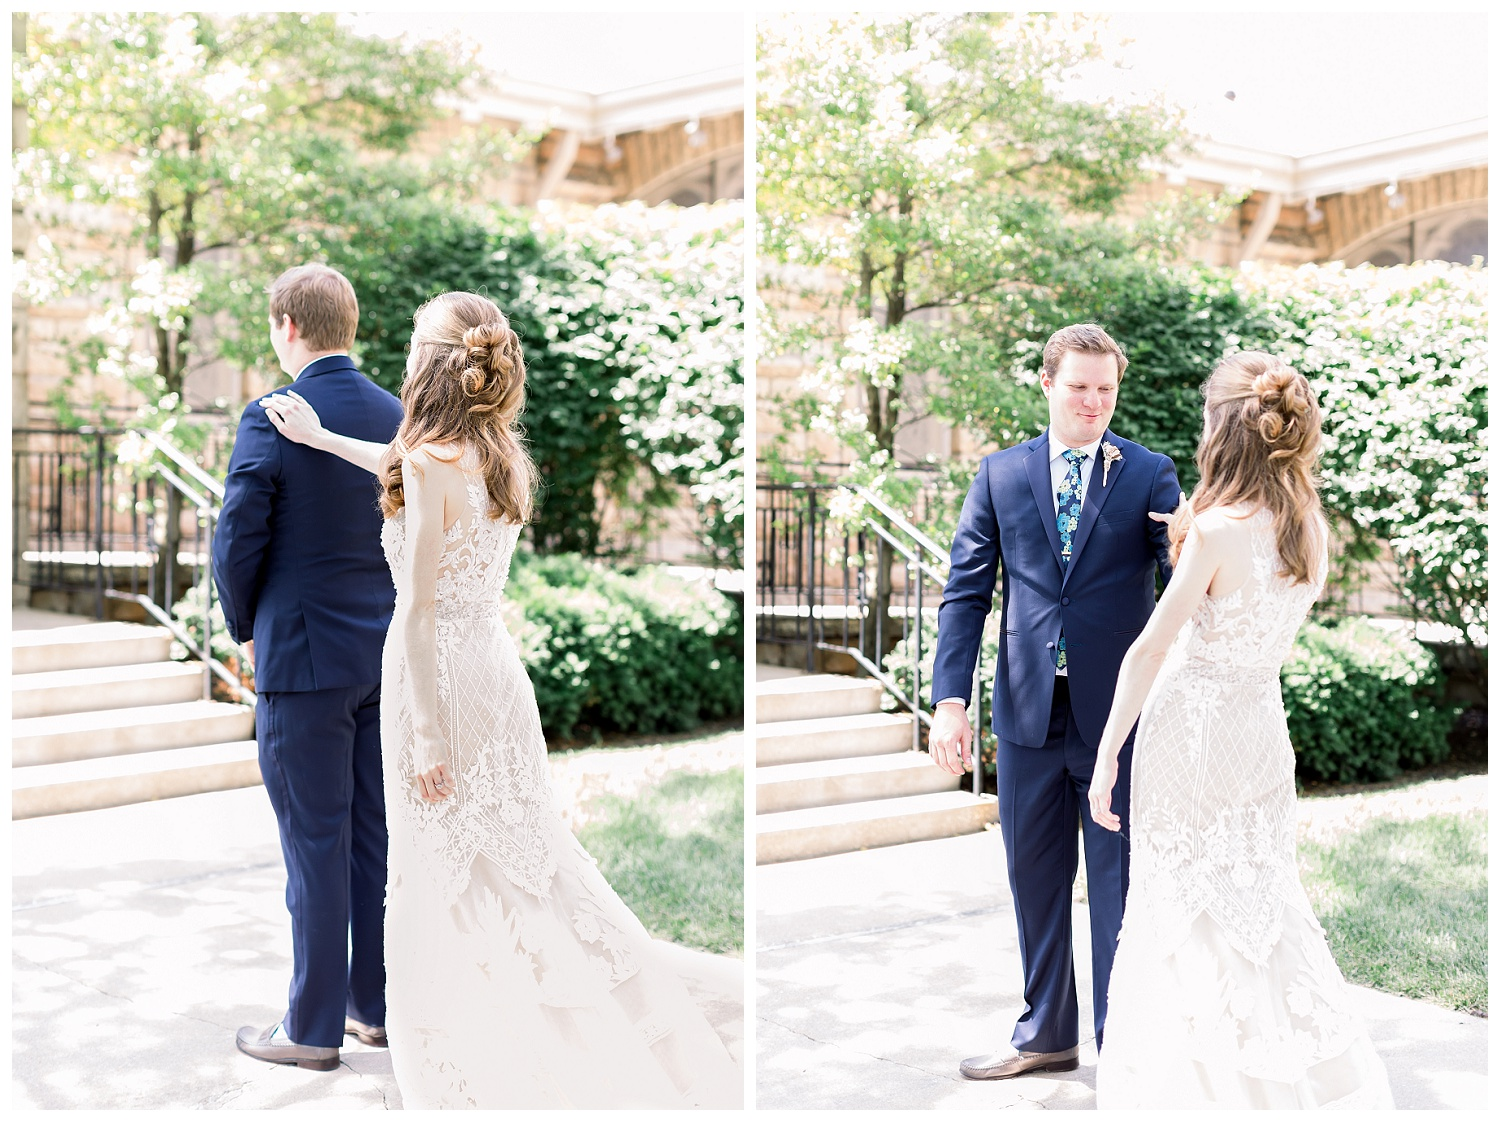 first looks on wedding day photos